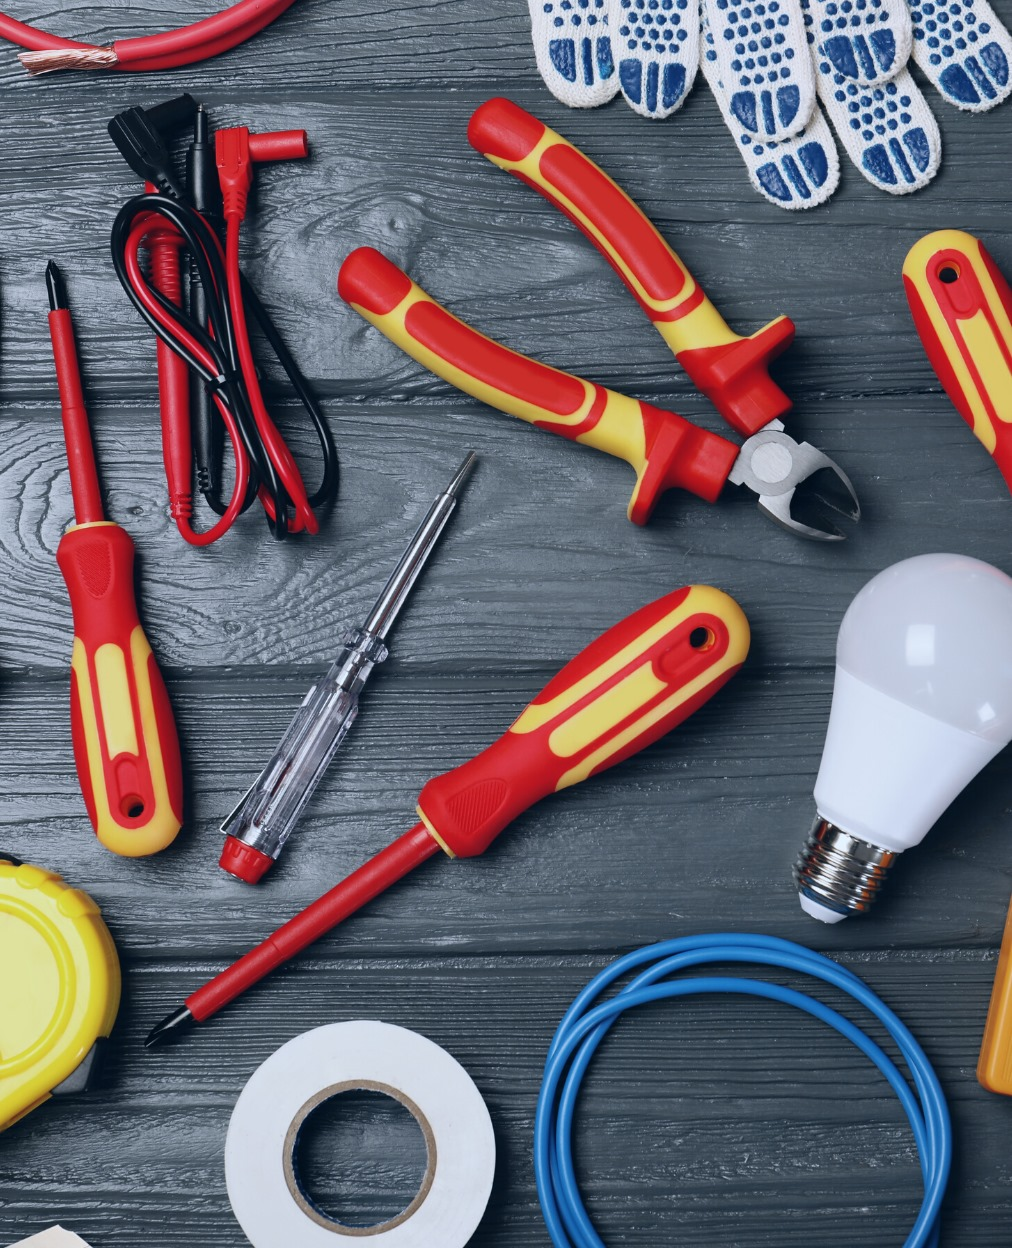 Local Electricians in London with electrical equipment